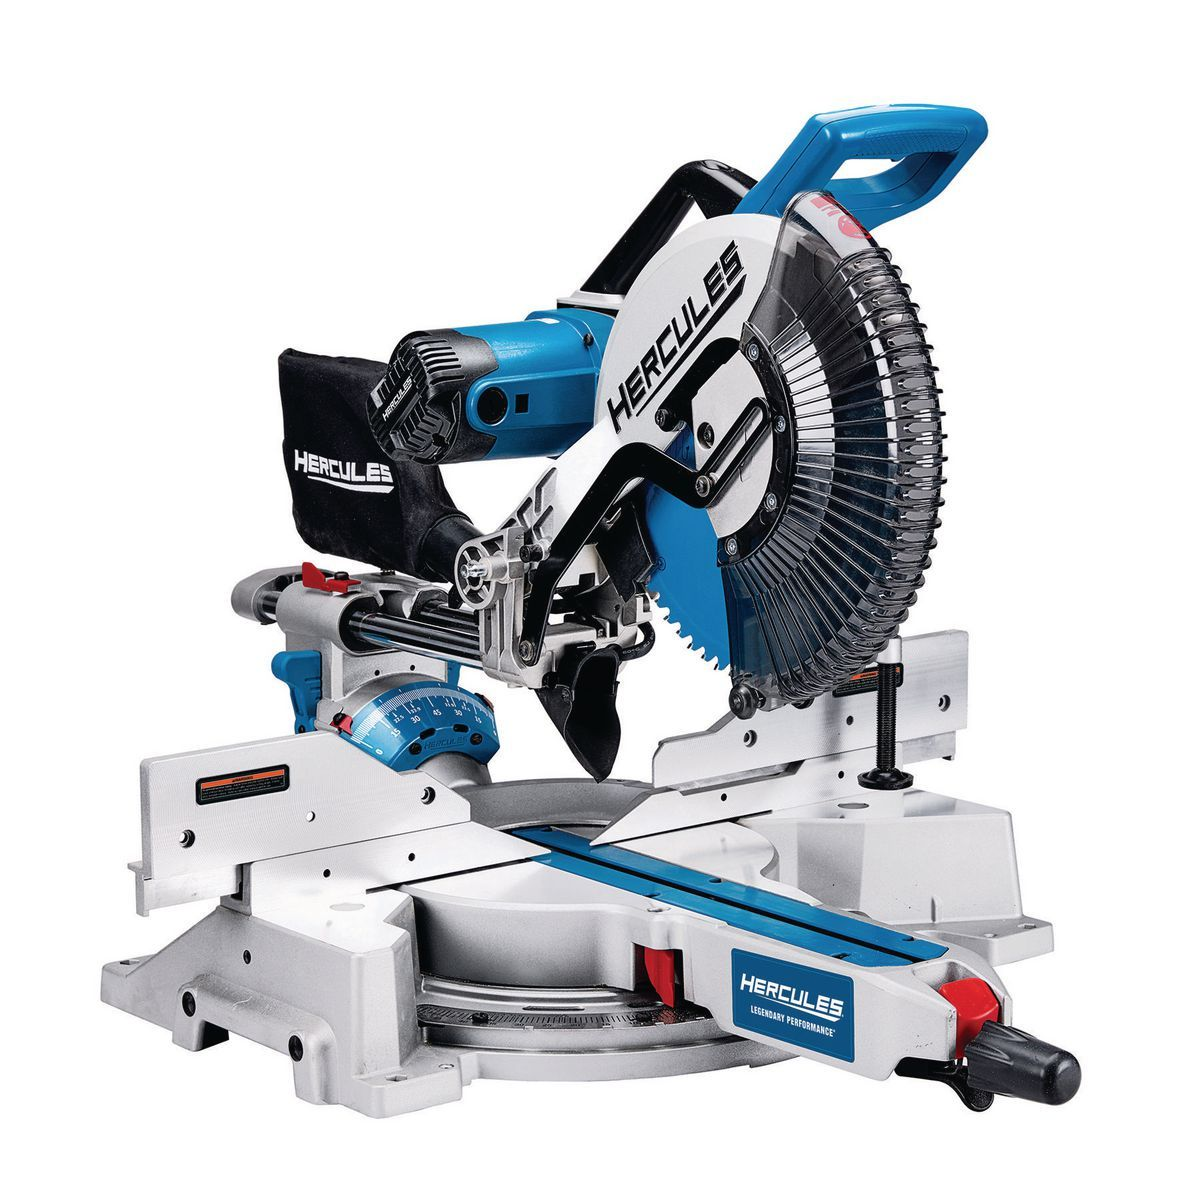 12 In Dual Bevel Sliding Compound Miter Saw With Precision Led Shadow Guide Sliding Compound Miter Saw Miter Saw Essential Woodworking Tools